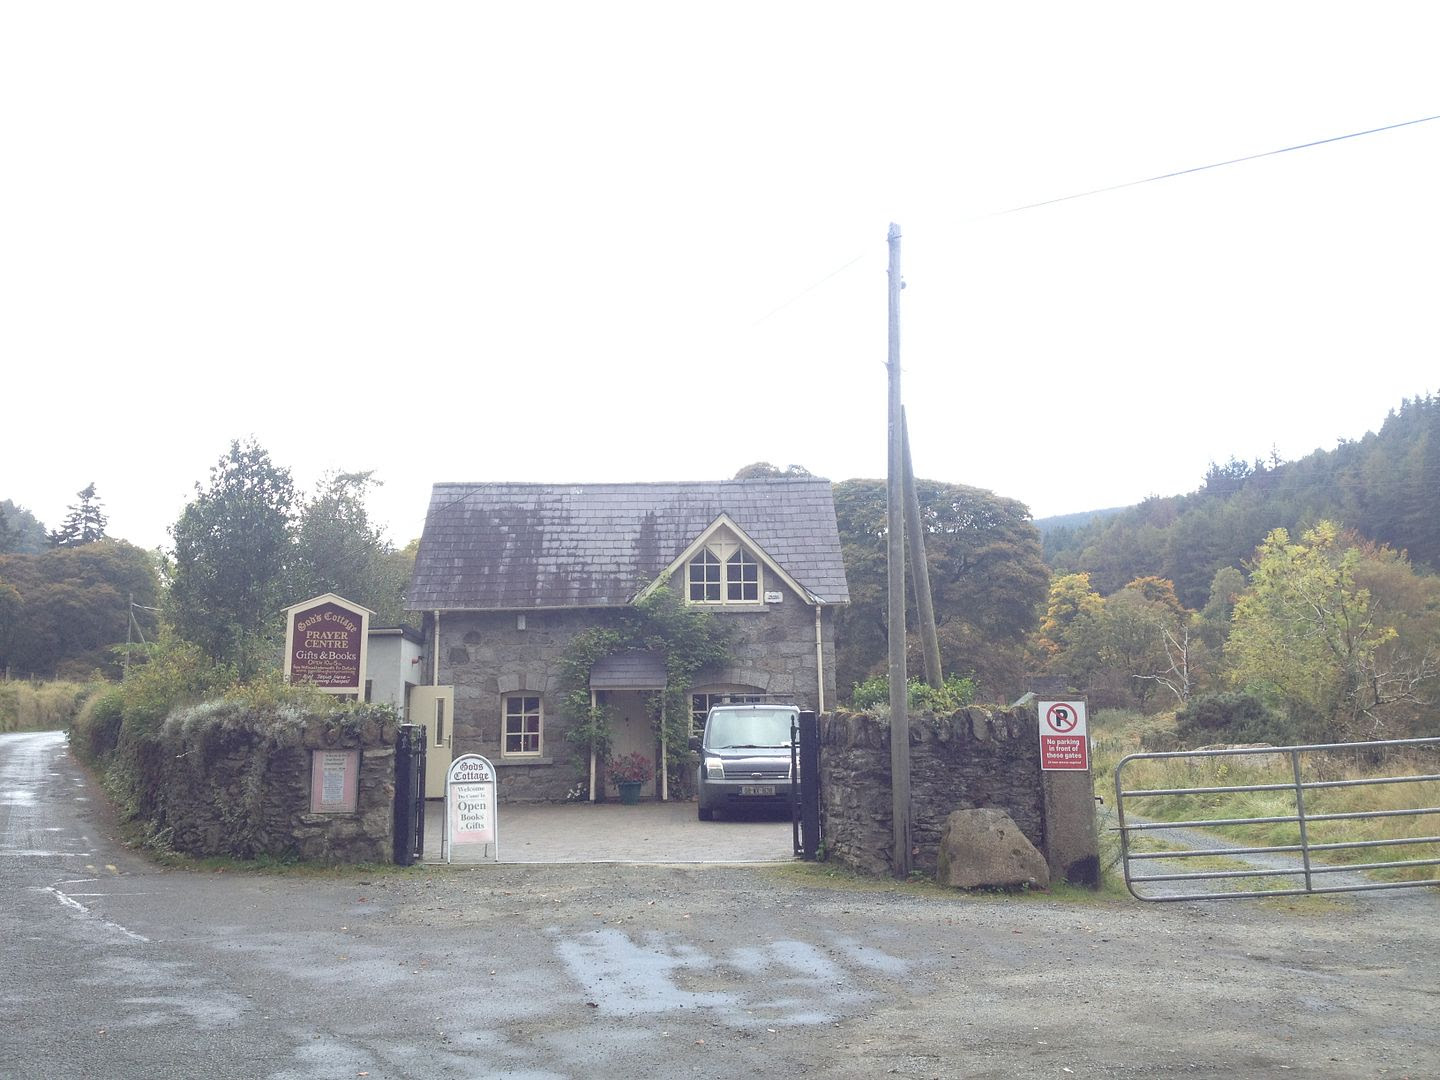 Glendalough, Ireland photo 2015-10-16 13.04.26_zpsavfgbvni.jpg